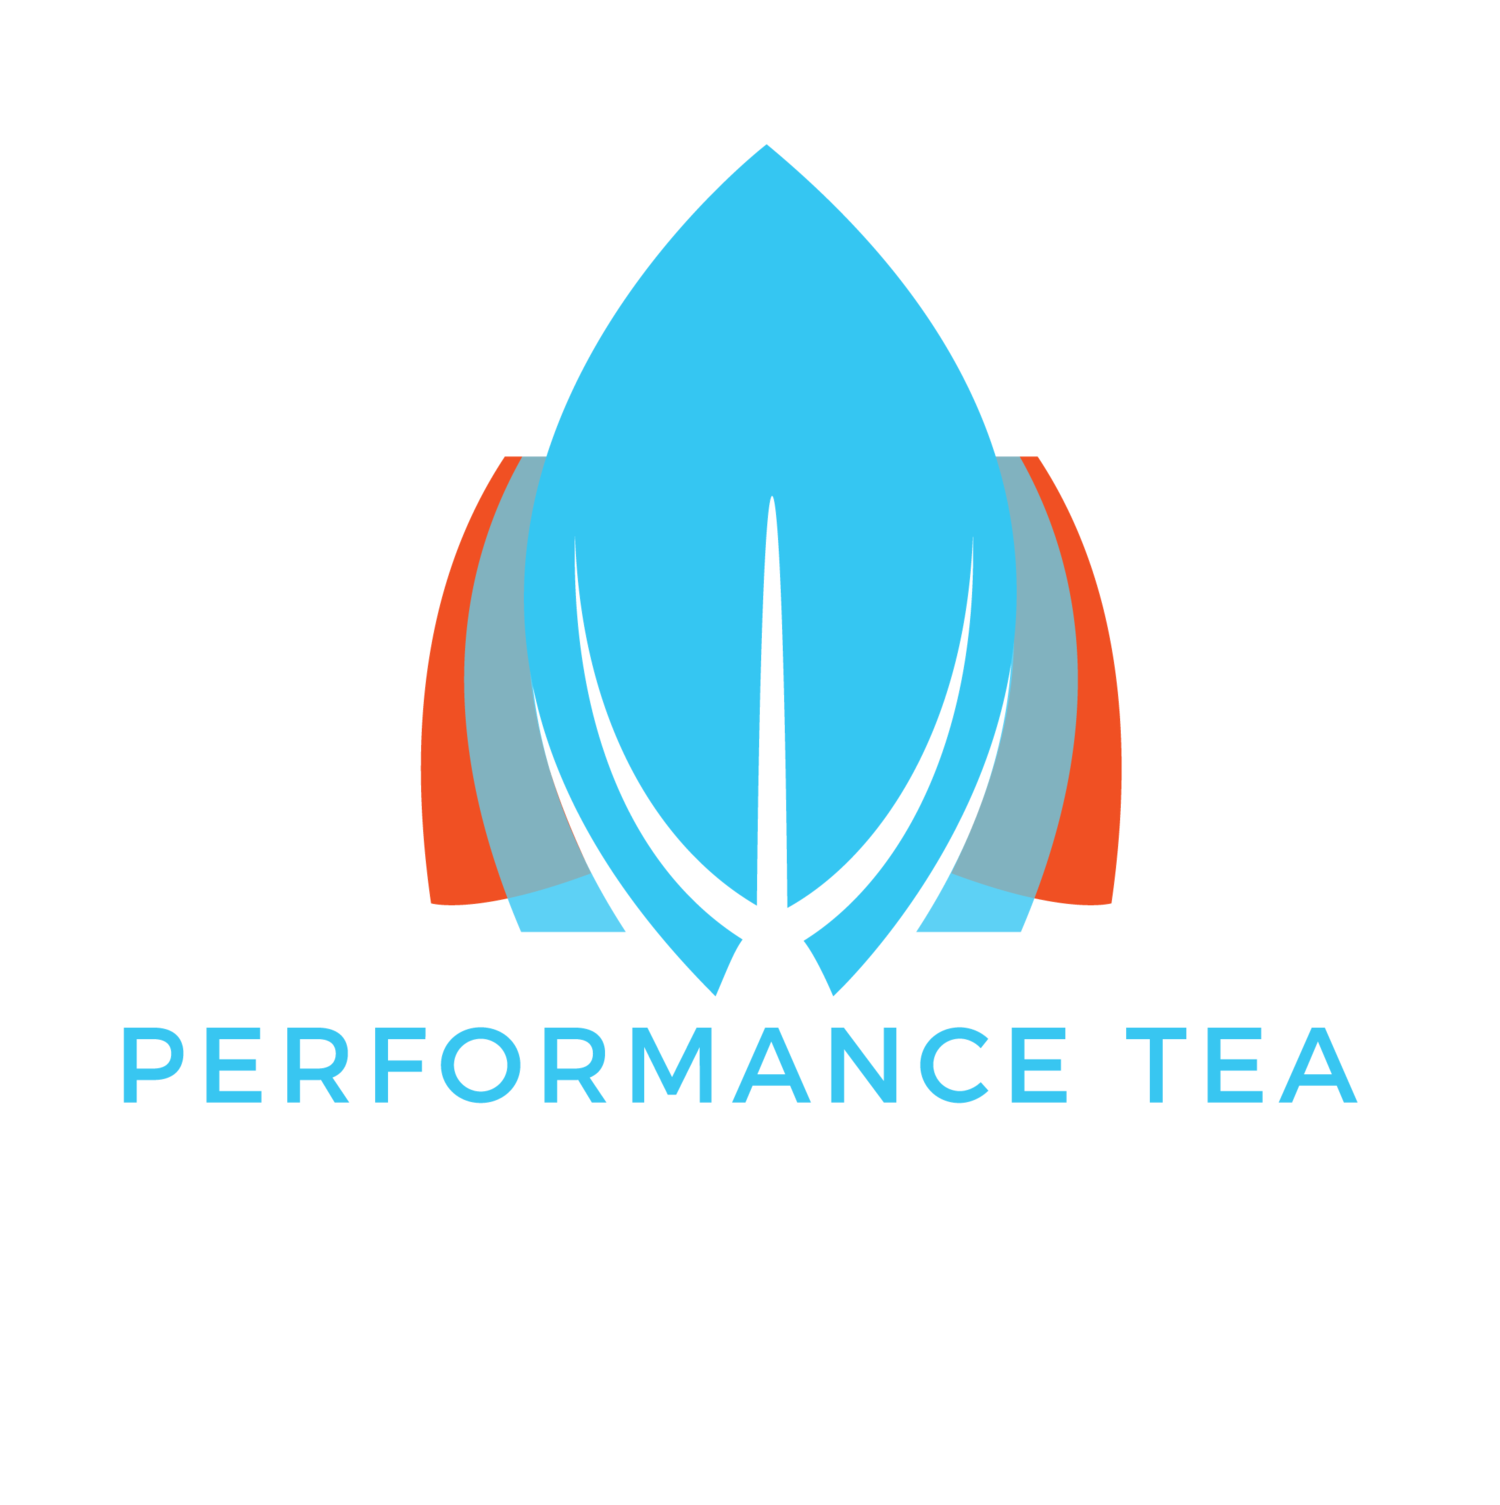 Performance Tea